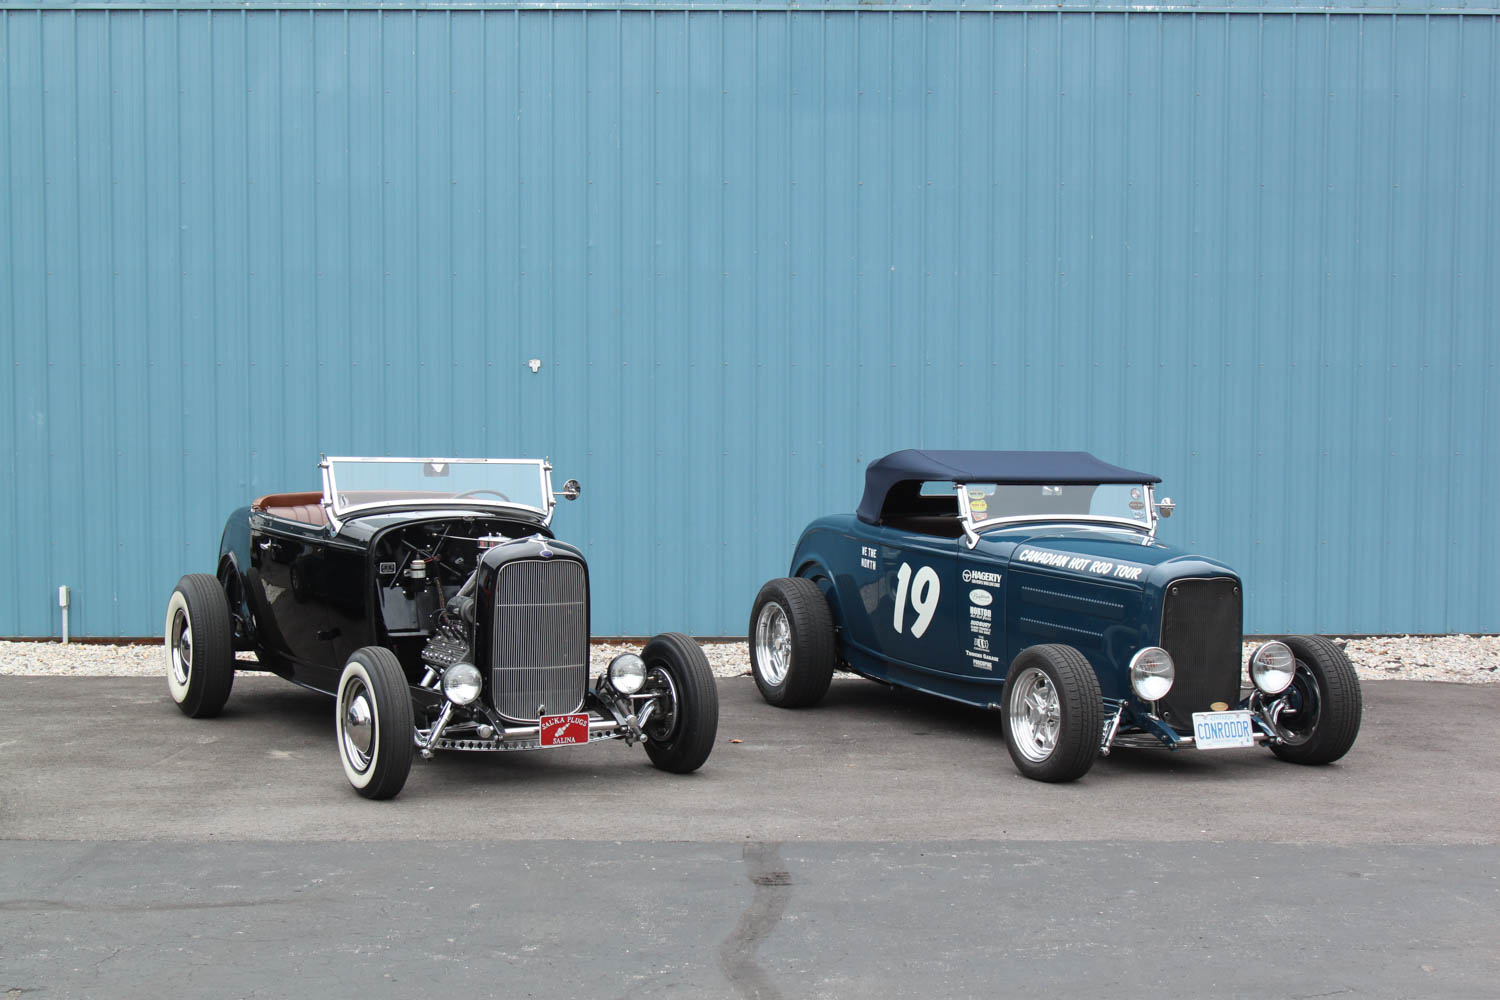 Franks roadster and Hagerty Roadster